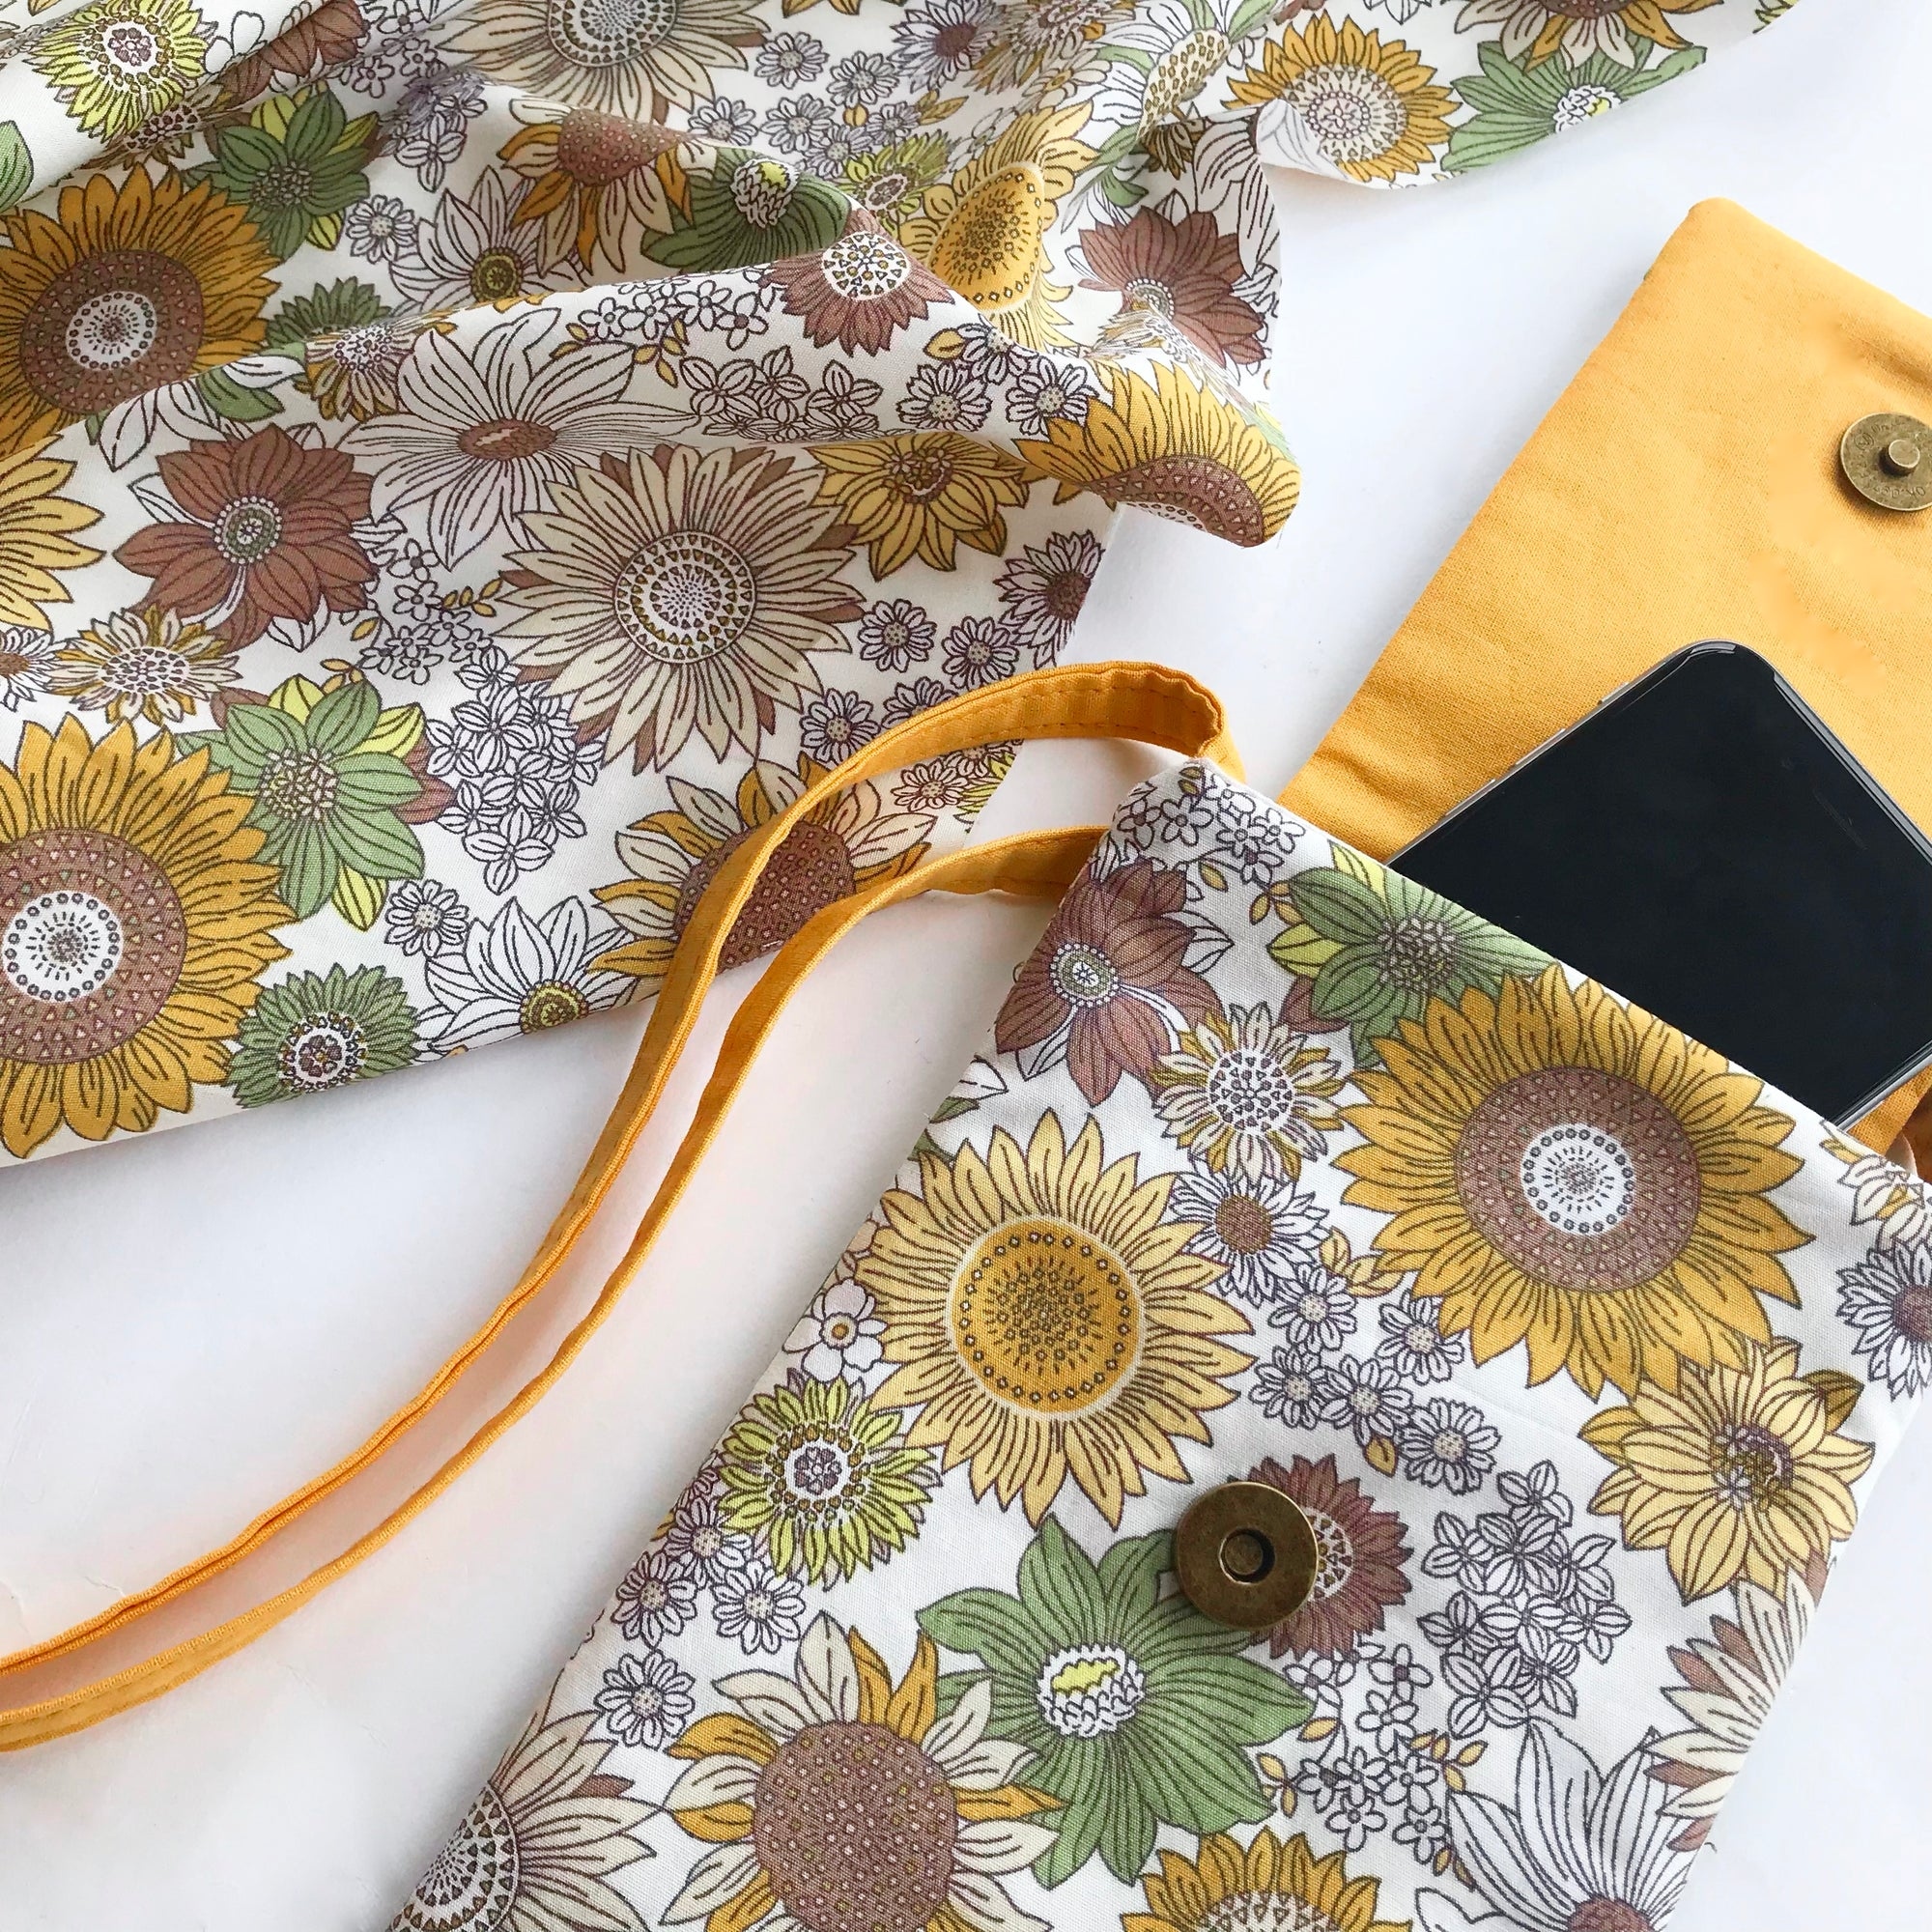 Easy to make: Autumnal Sewing Projects